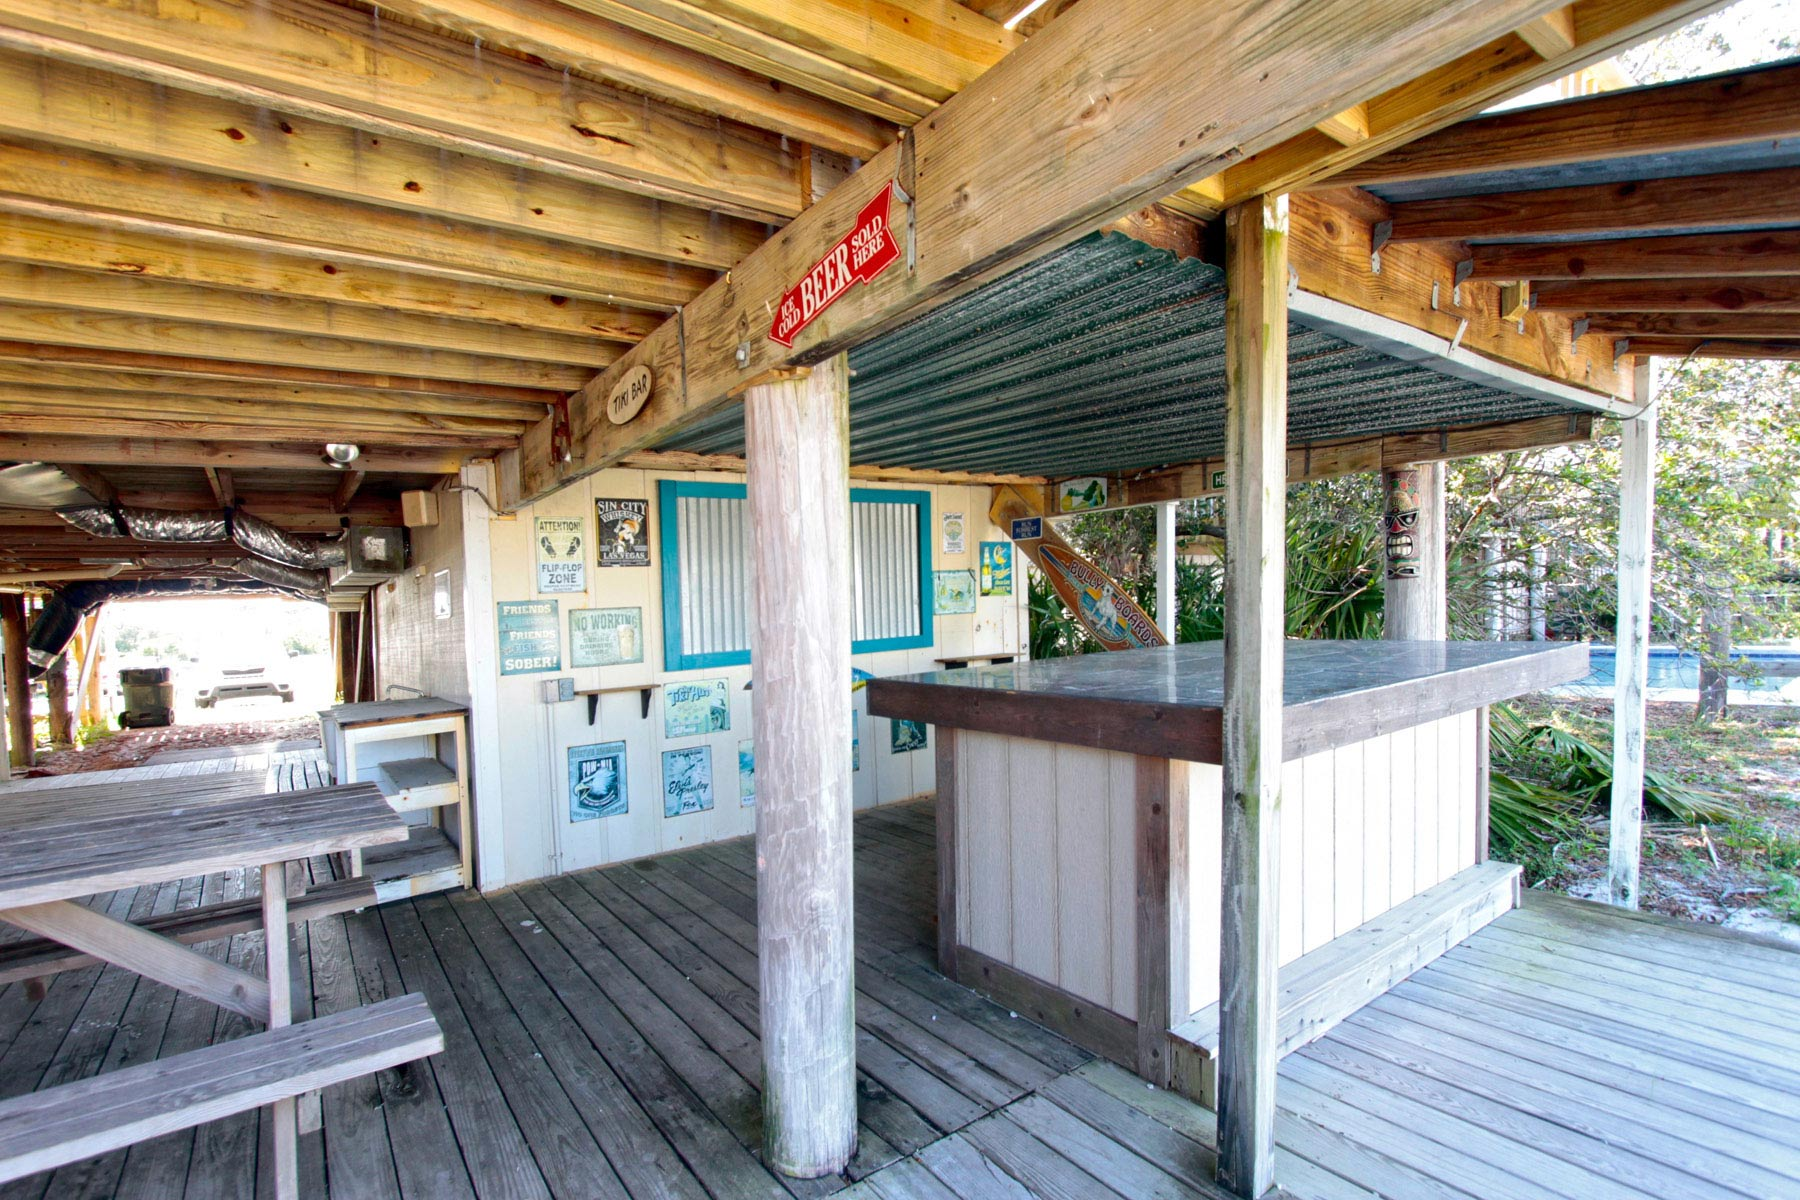 Awesome hang-out area with tiki bar with picnic table